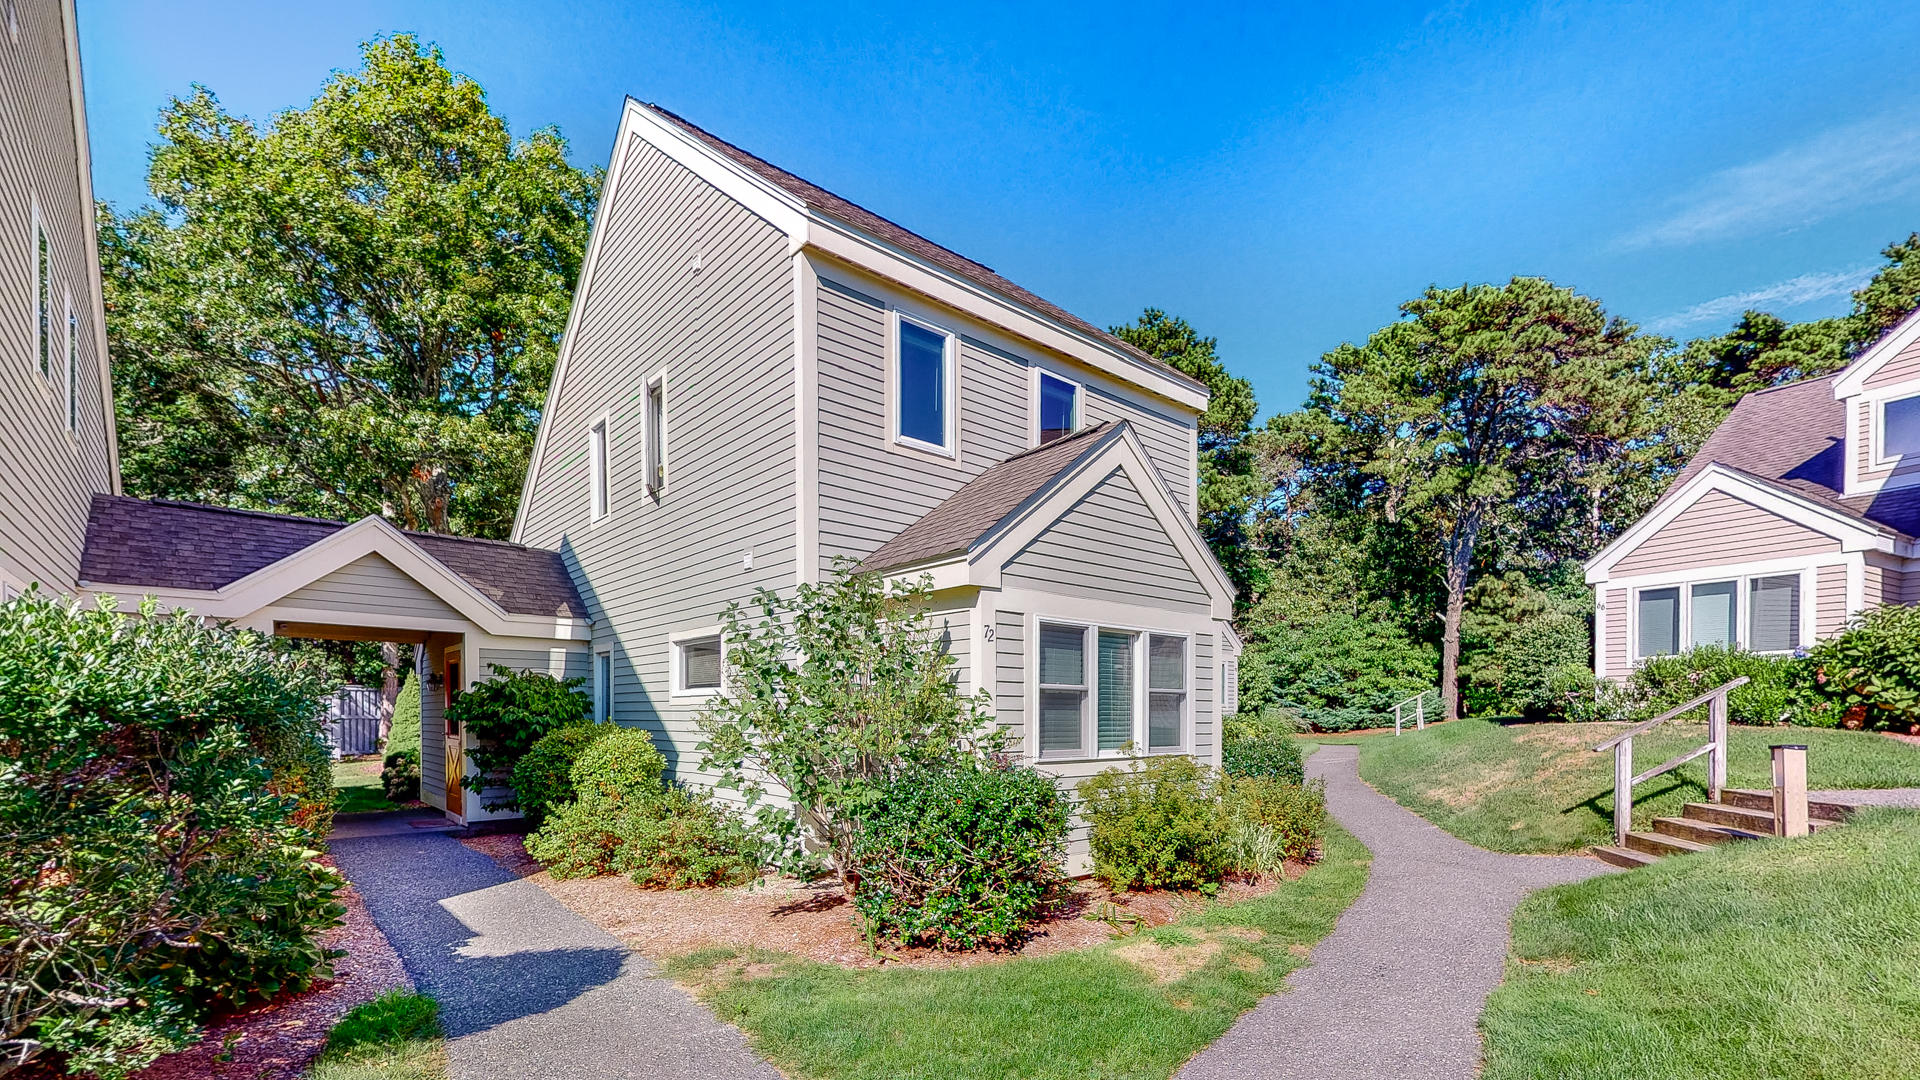 72 Howland Circle, Brewster MA, 02631 sales details